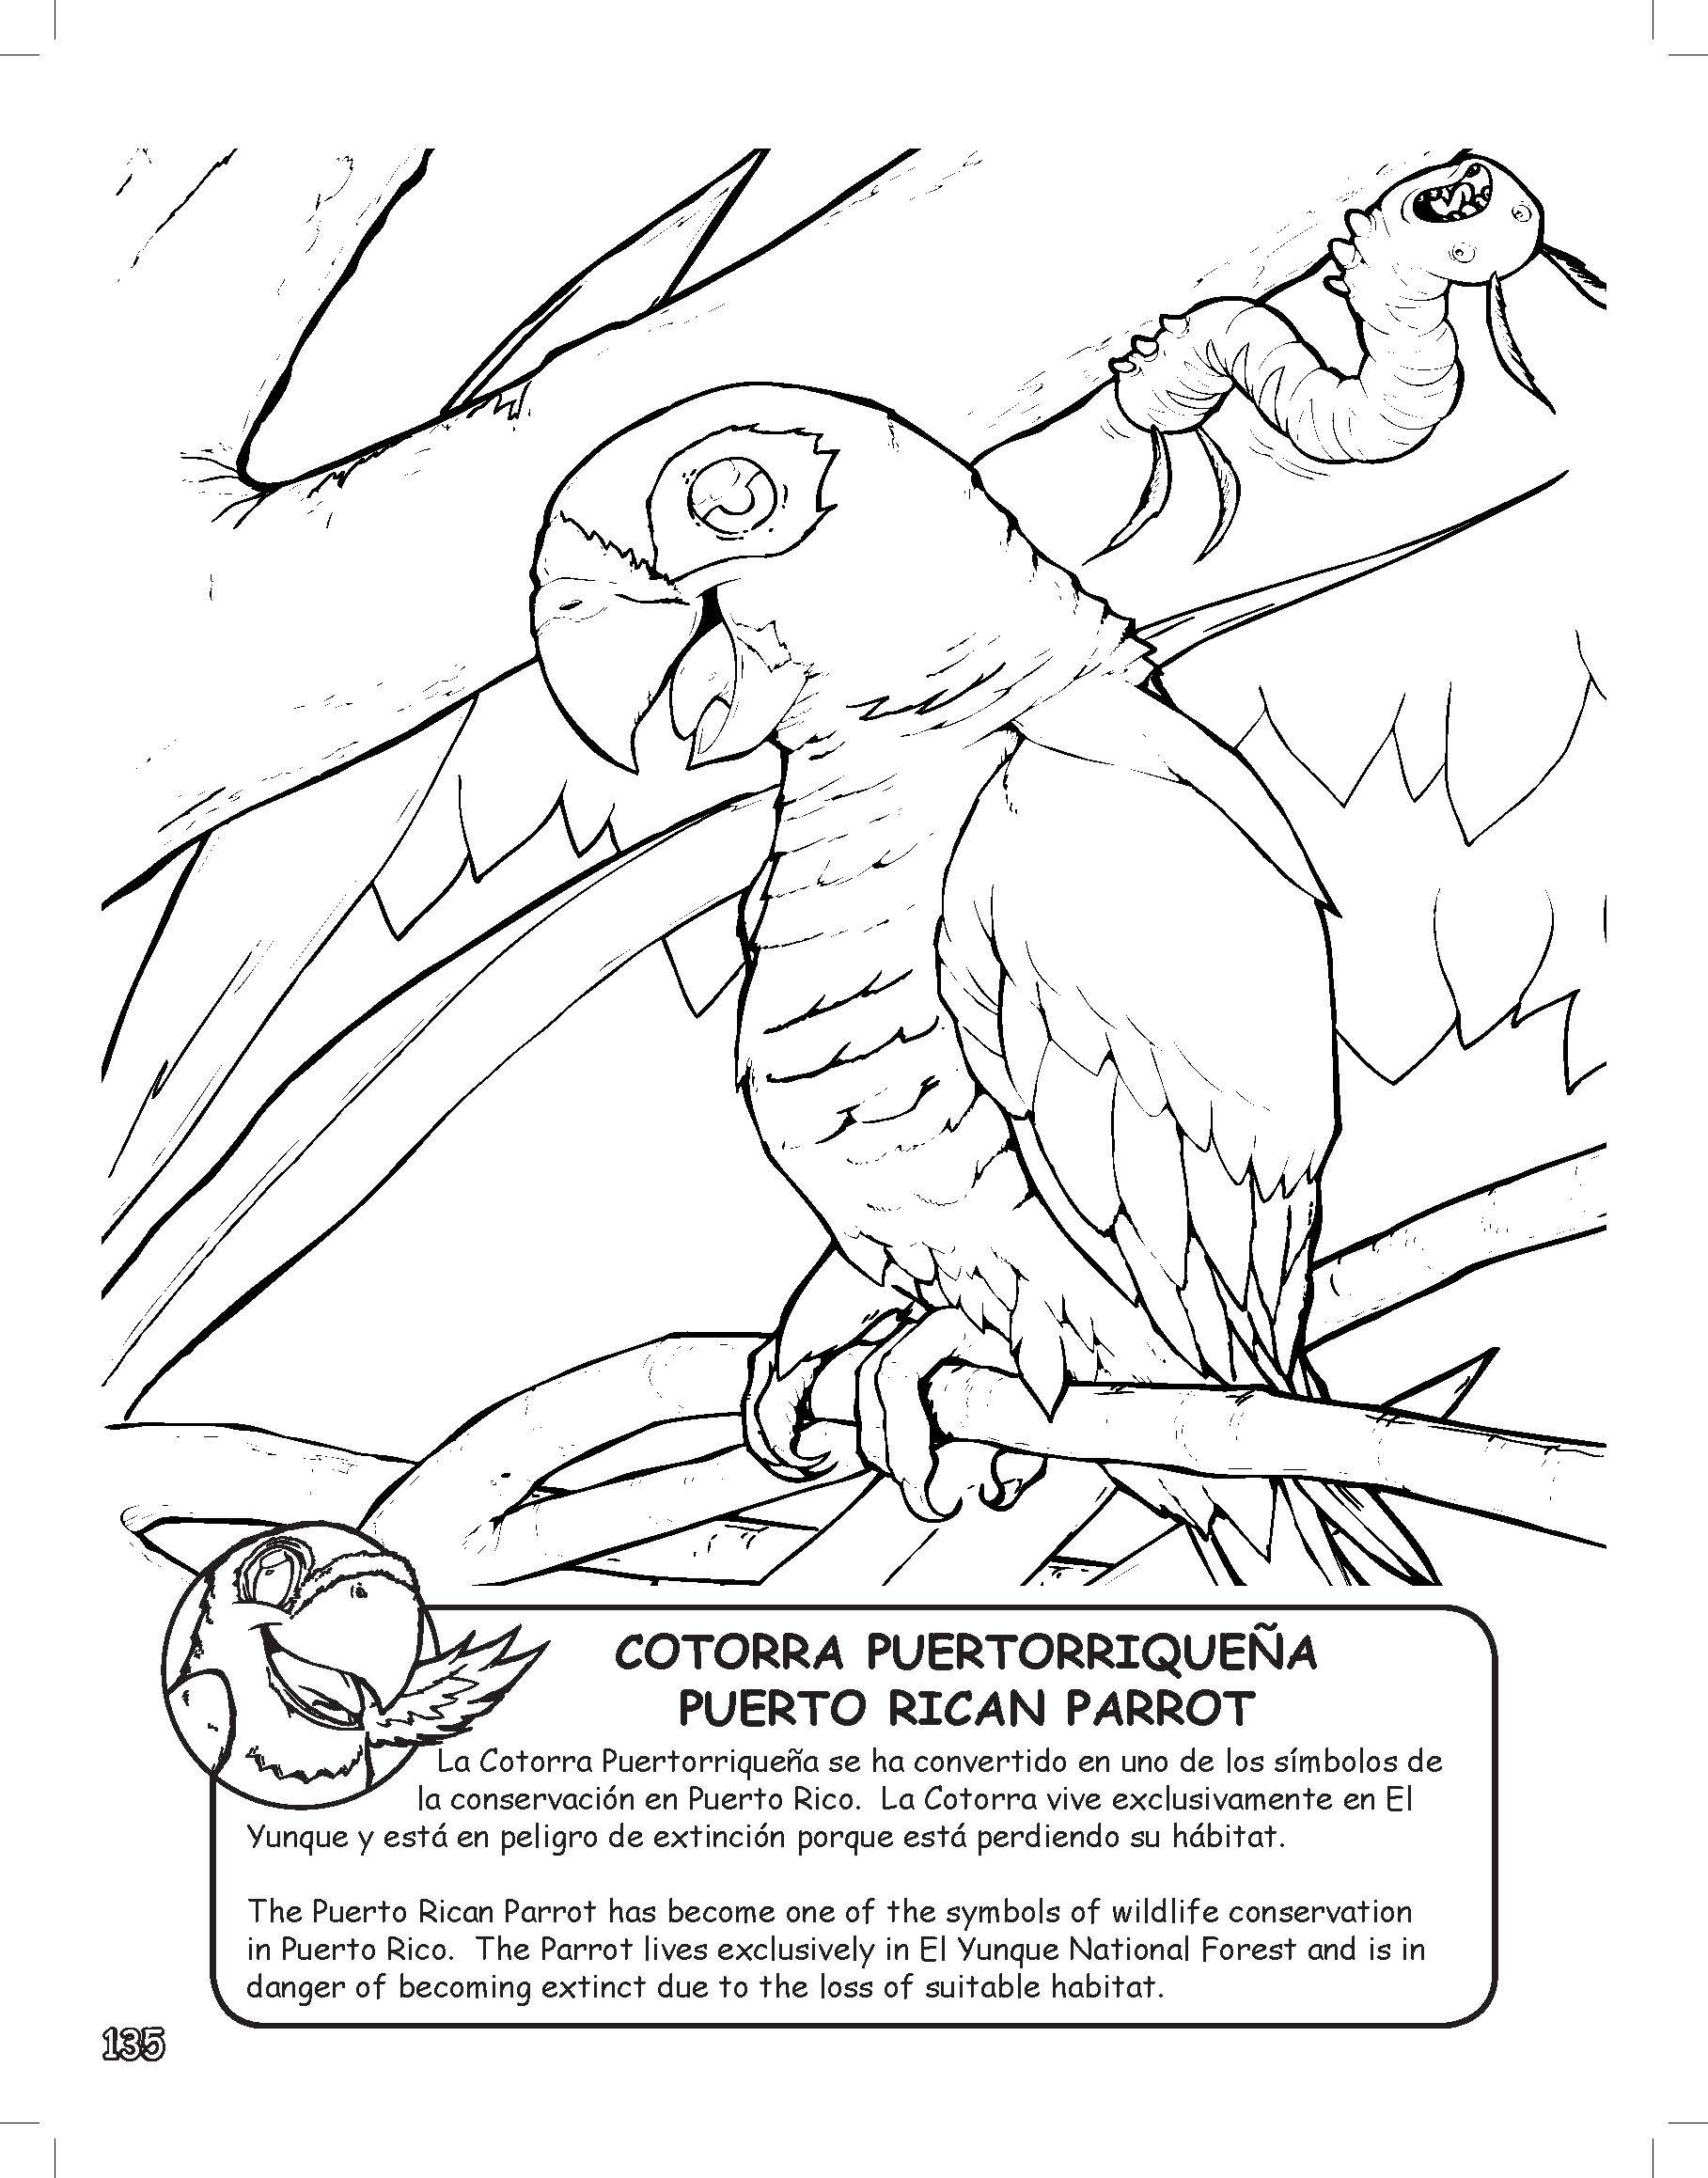 Puerto rico coloring learning activity book 303 pages with 4 pages puerto rico coloring learning activity book 303 pages with 4 pages of colorful stickers english and spanish edition amazon mark drenth biocorpaavc Choice Image